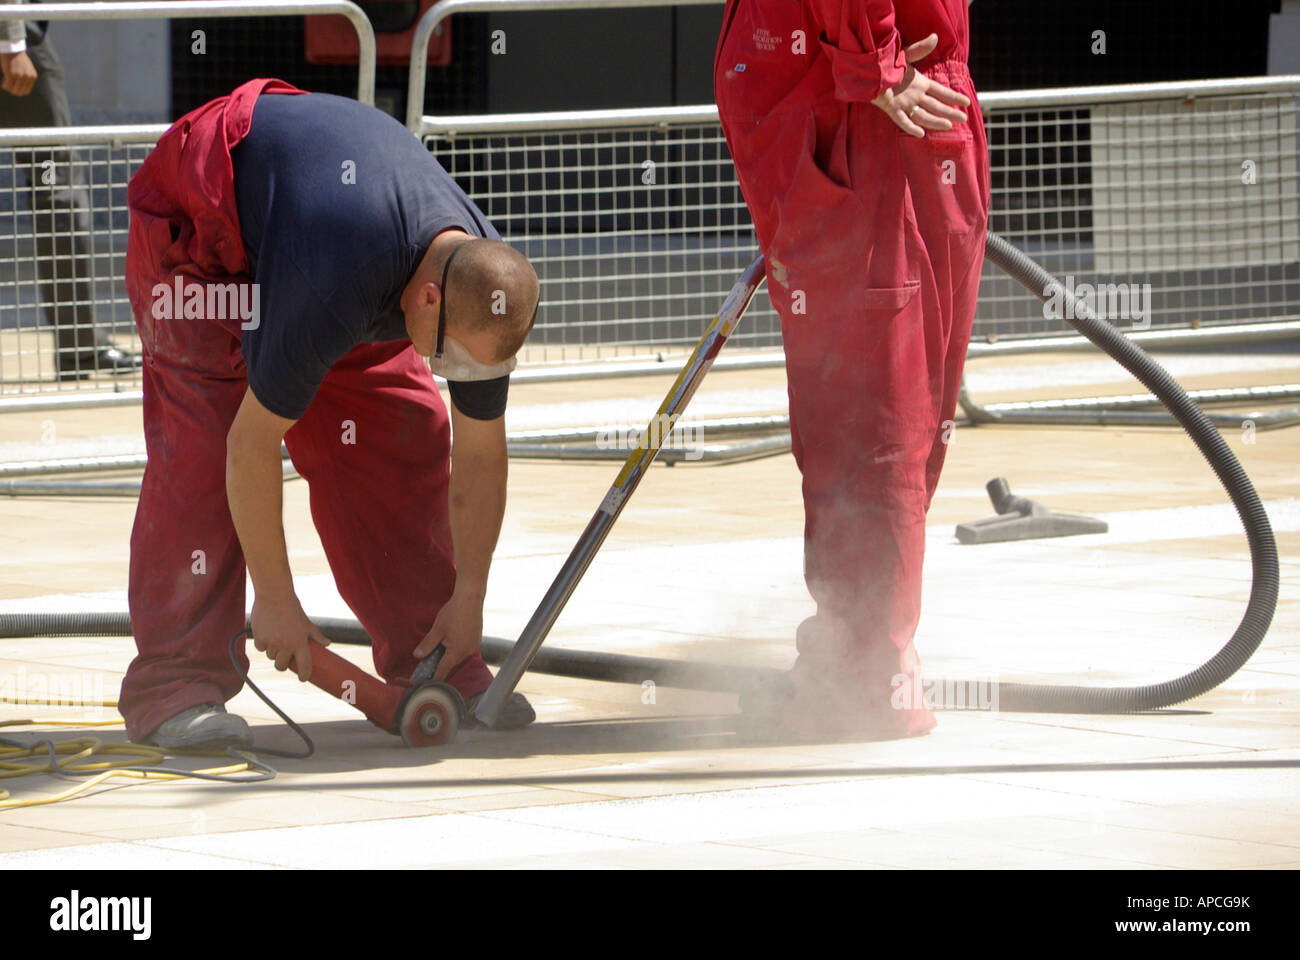 City of London pavement repair work in progress two workmen using disc cutter vacuum dust control - Stock Image